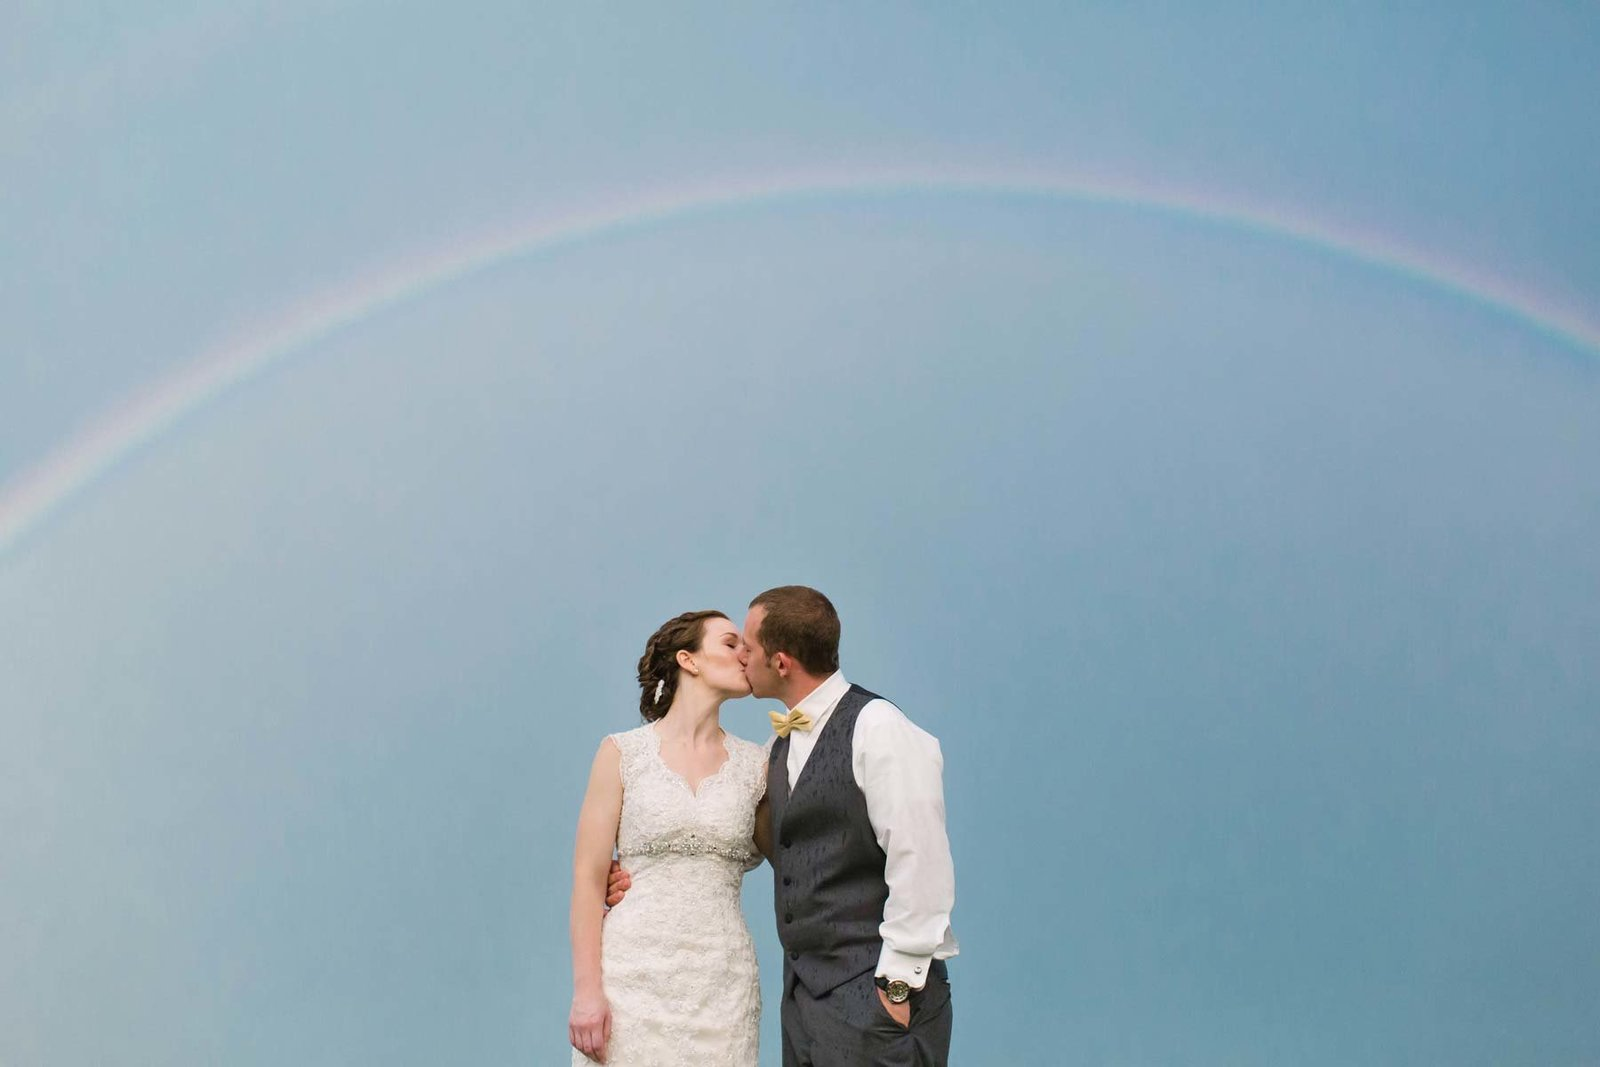 Veasey Park Groveland Massachusetts Wedding Photographer Rainbow Image